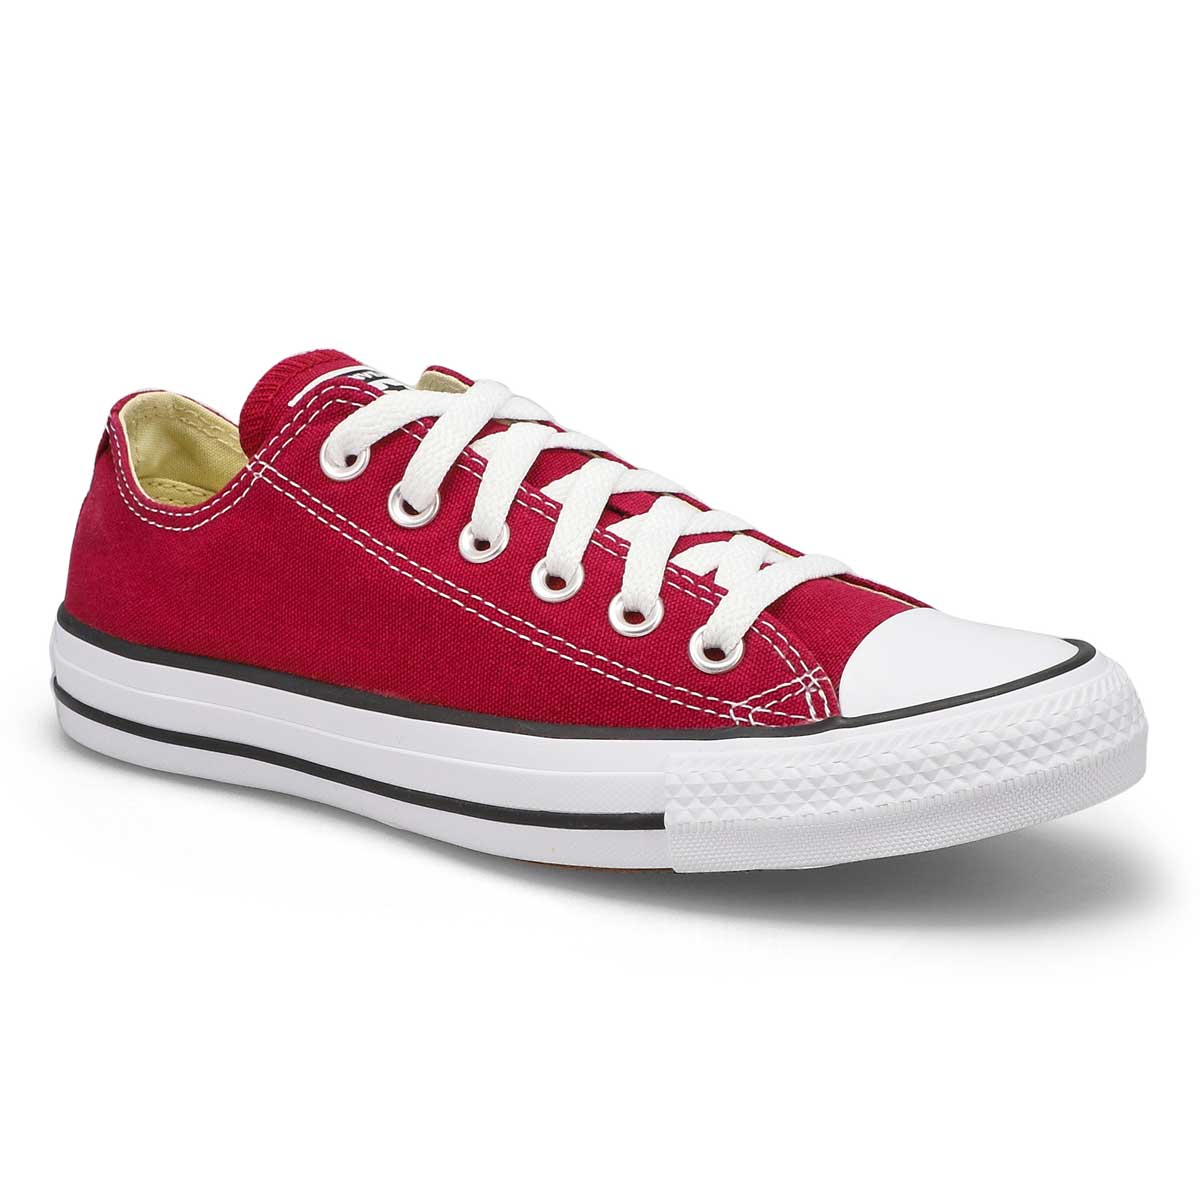 Women's CT ALL STAR CORE OX maroon sneakers